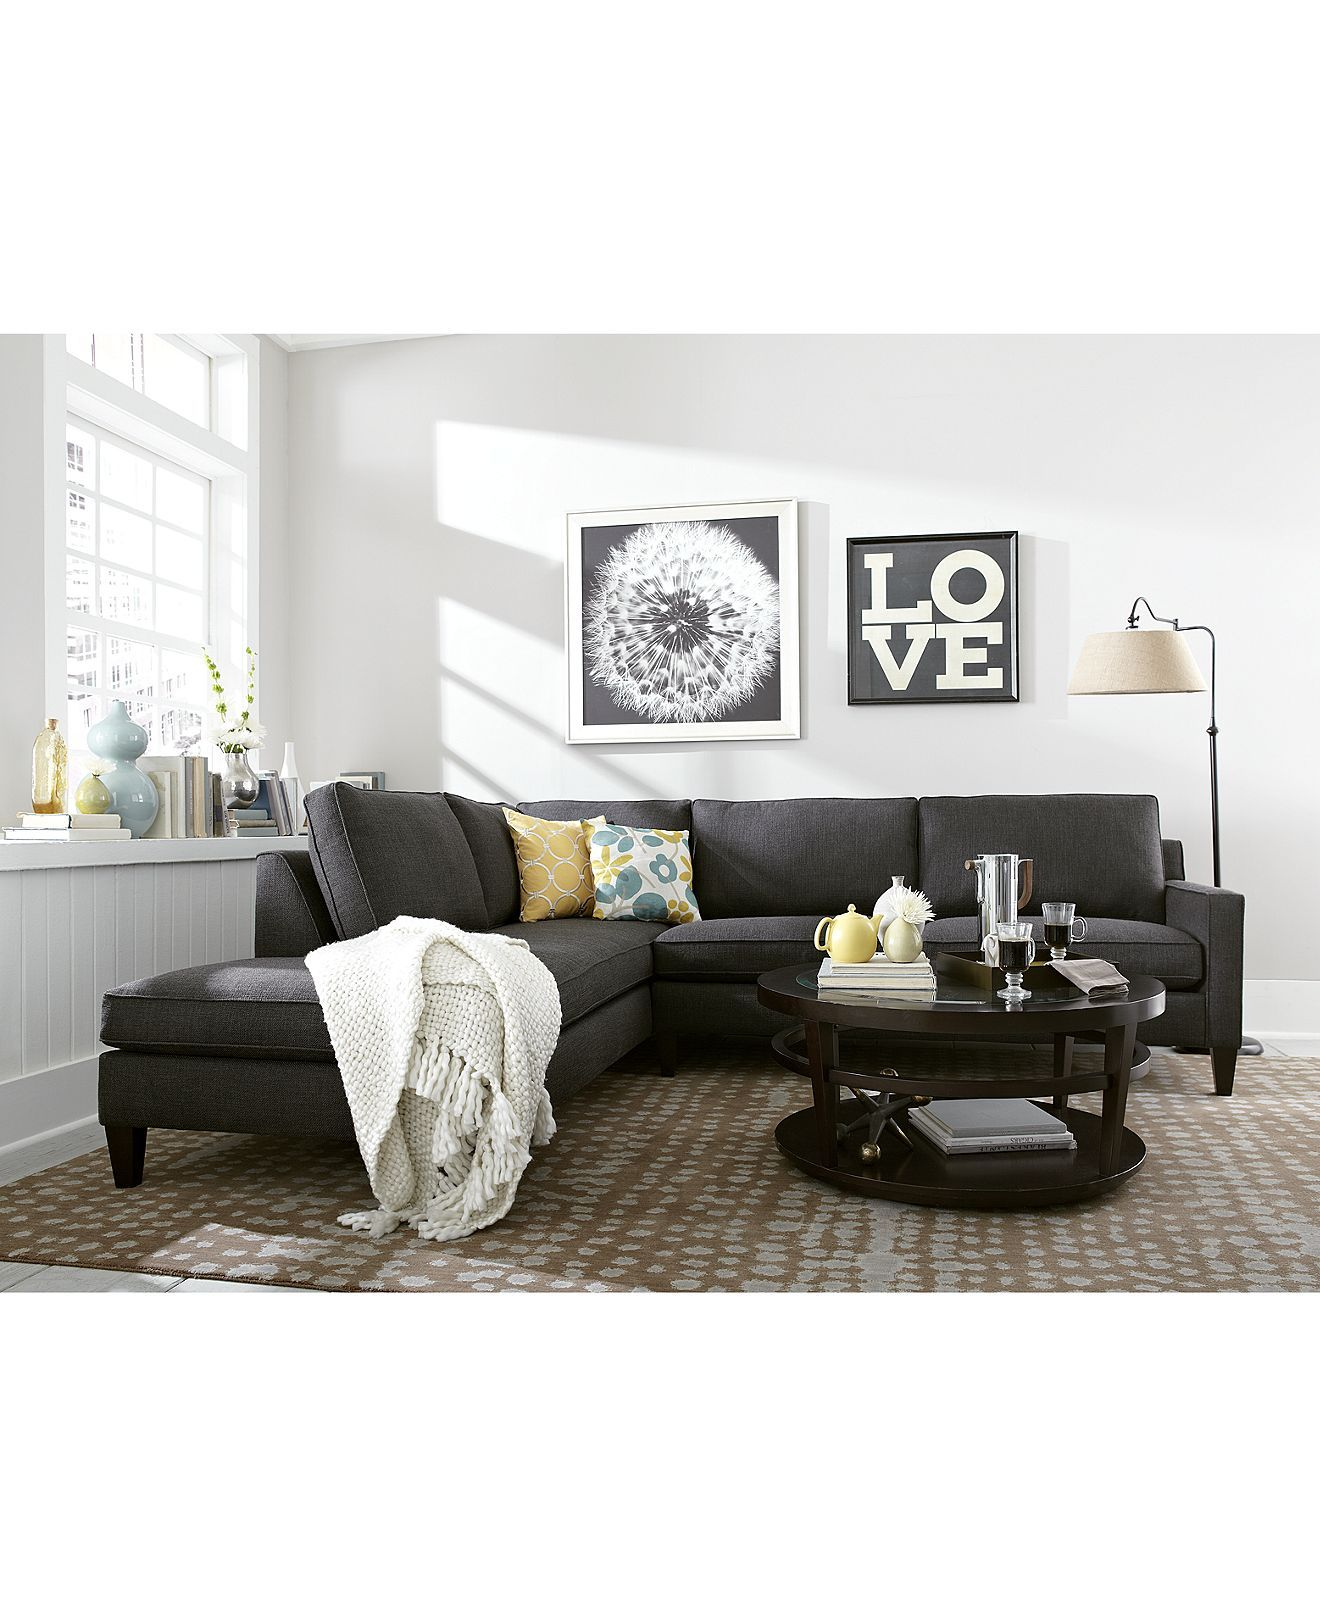 Alanis Fabric Sectional in Charcoal Macys I like the b&w